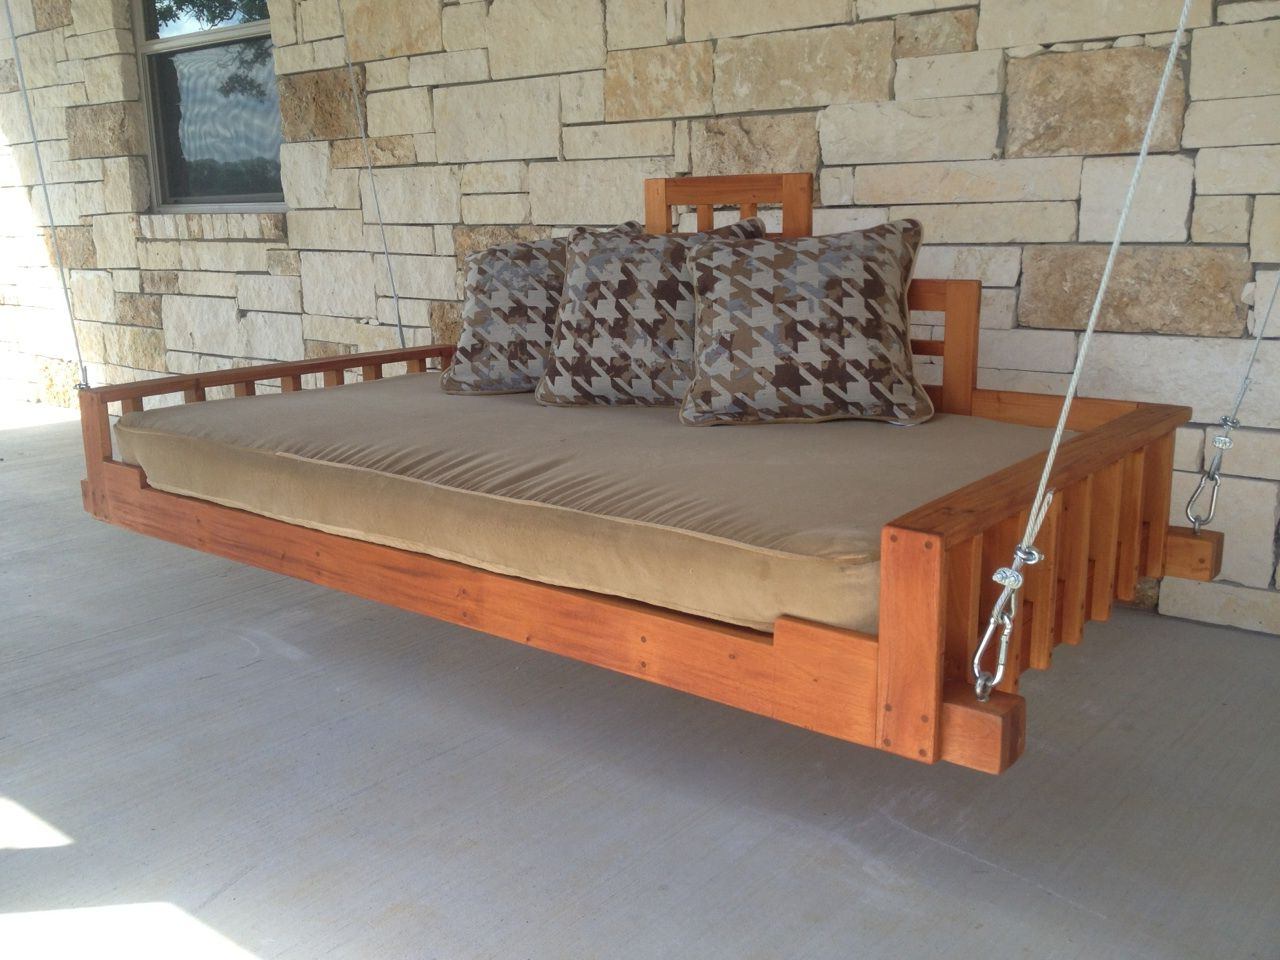 2019 Hand Made Outdoor Patio Swing Bed Or Hanging Day Bed With Regard To Hanging Daybed Rope Porch Swings (View 3 of 30)